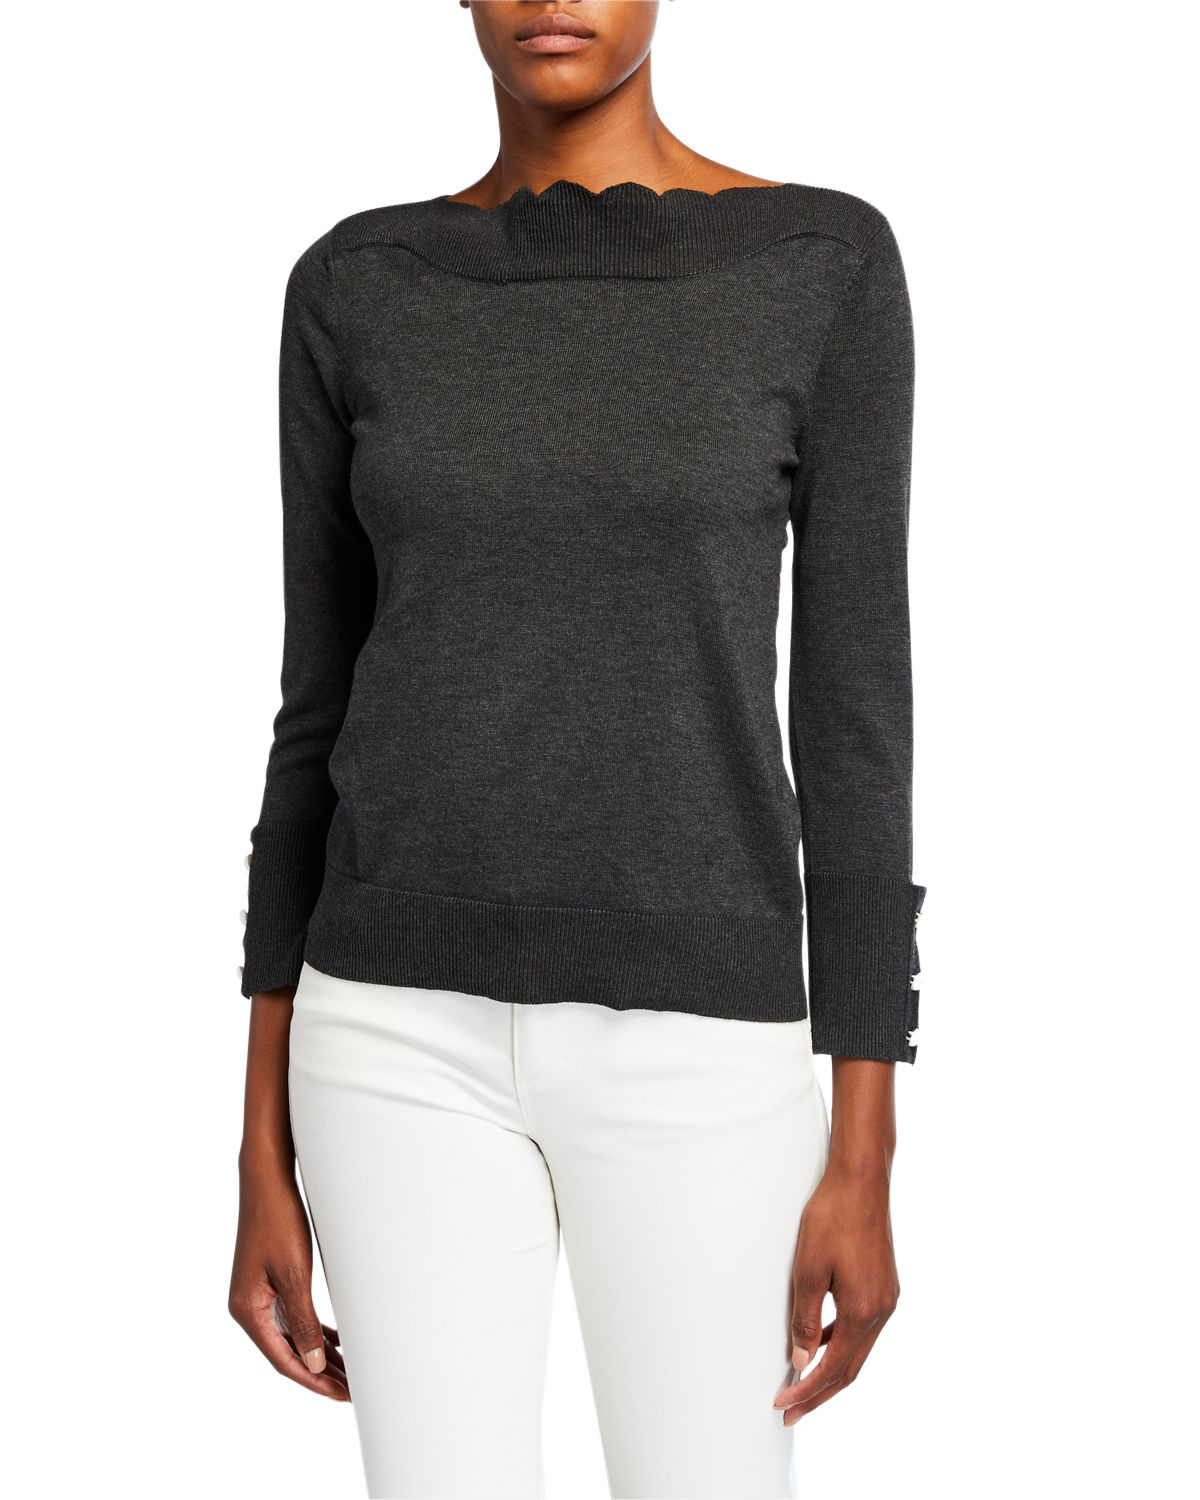 Neiman Marcus Tops SCALLOP-NECK BRACELET-SLEEVE TOP